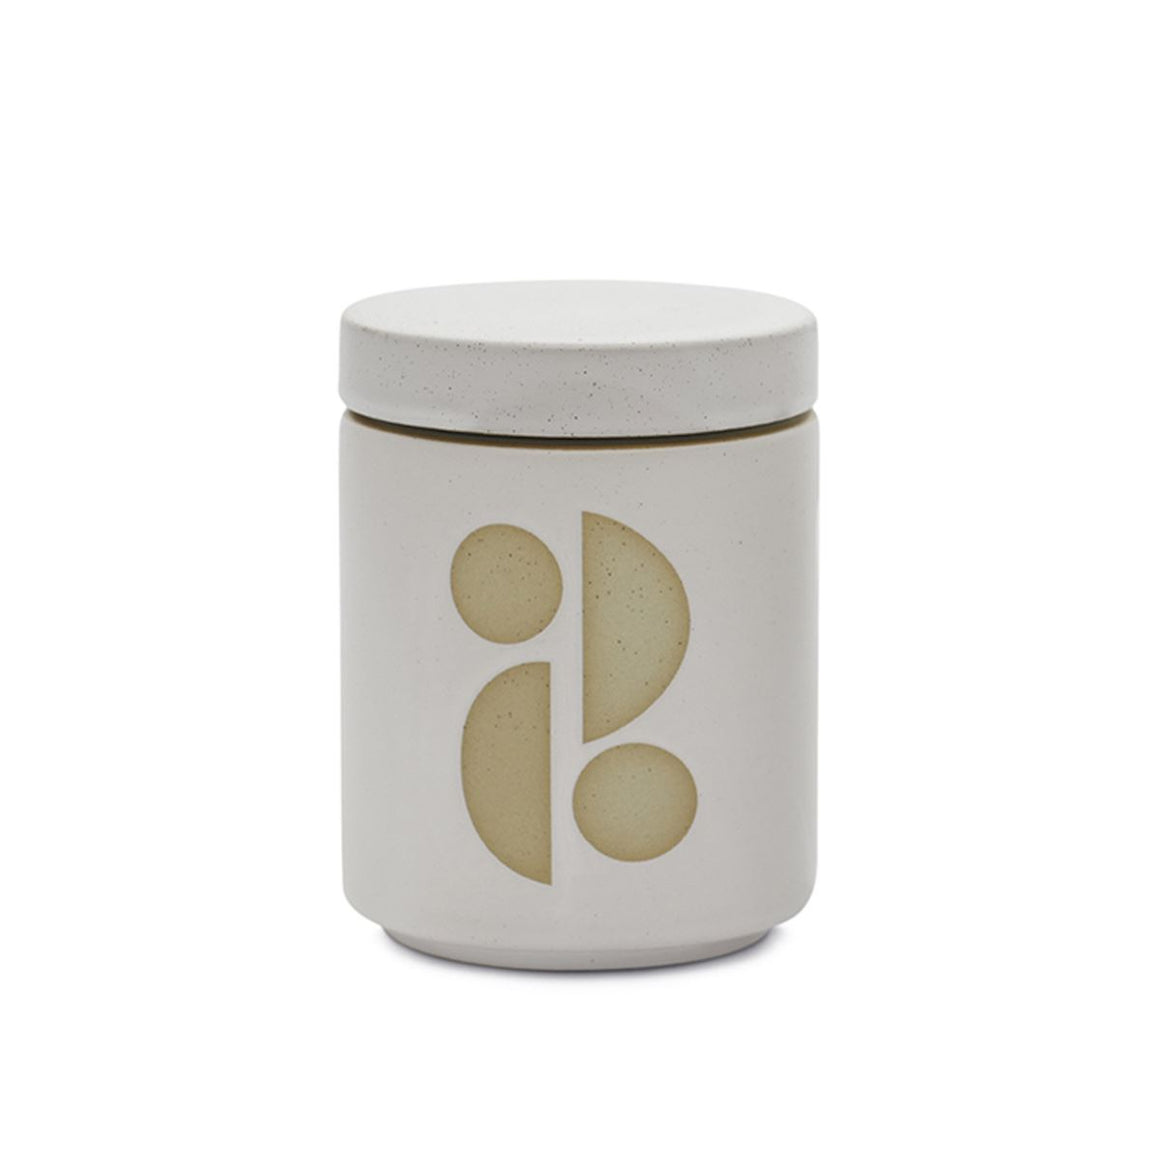 Form - Tobacco Flower Soy Candle - Sullivan Street Tea & Spice Company